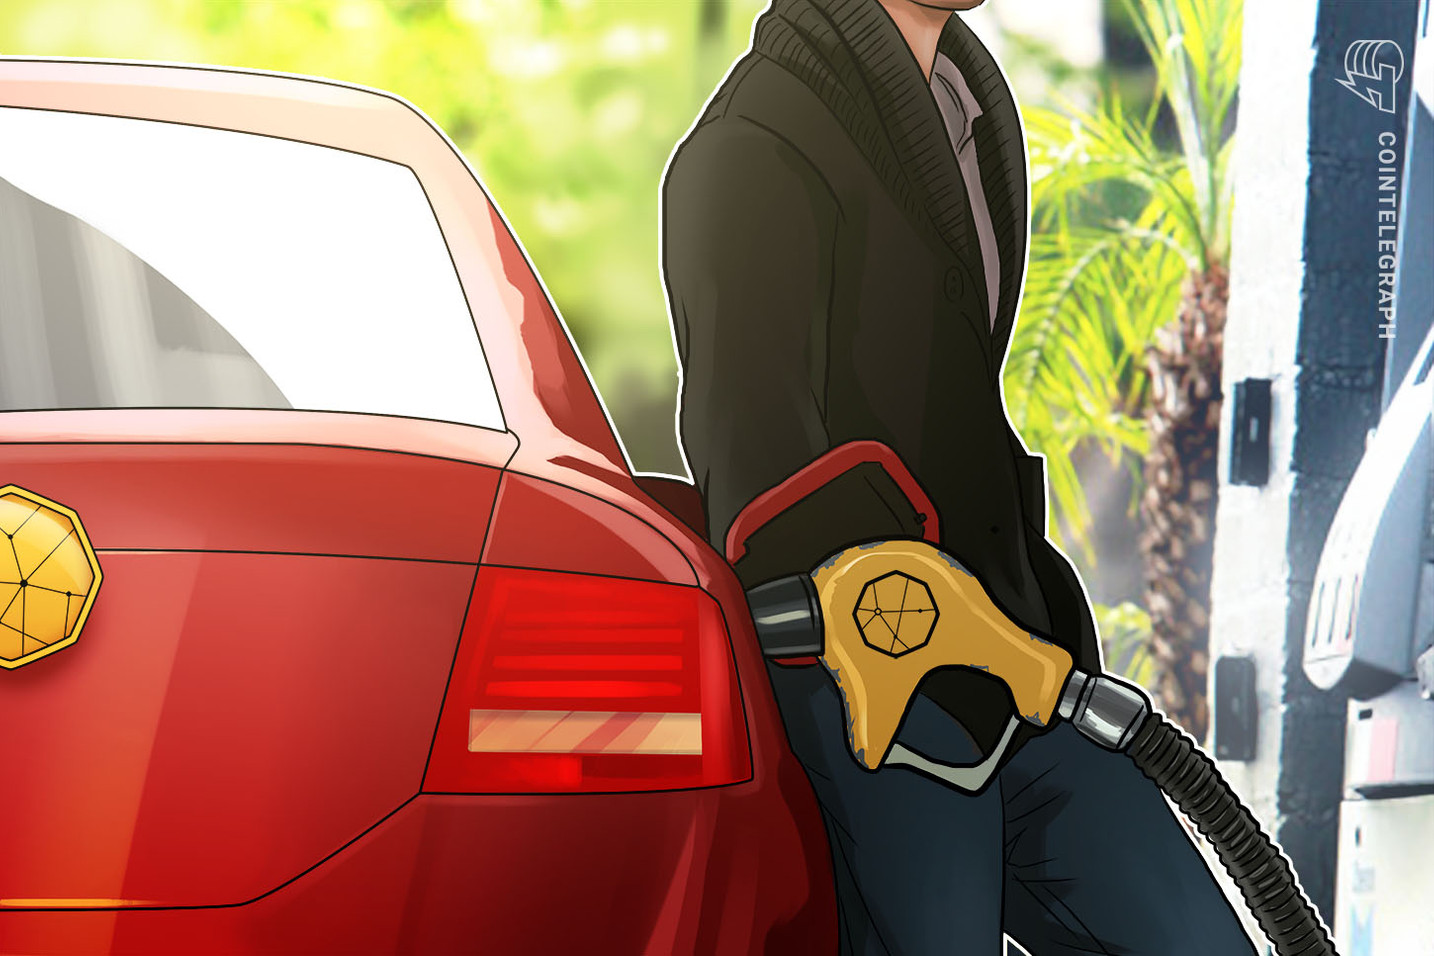 Different kind of gas fees: Electrocoin enables crypto petrol payments in Croatia